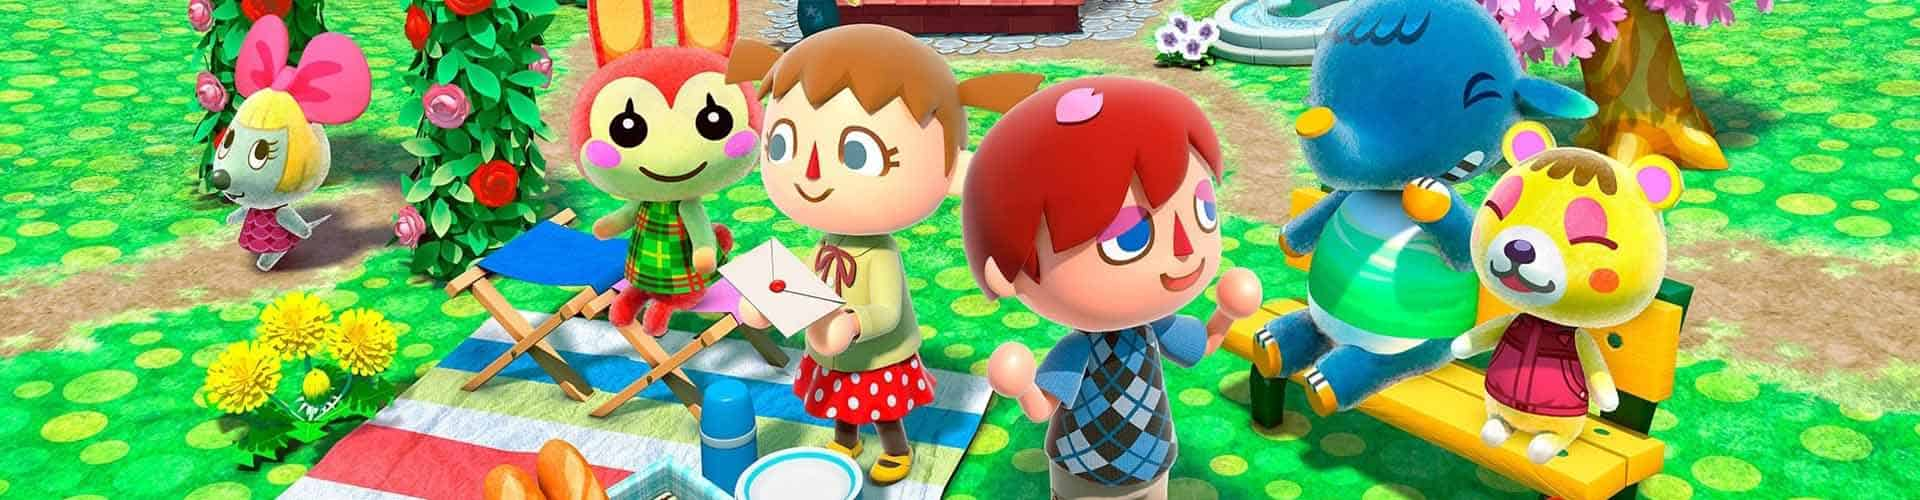 Animal Crossing: New Horizons Release Date, News, Trailer And Rumors